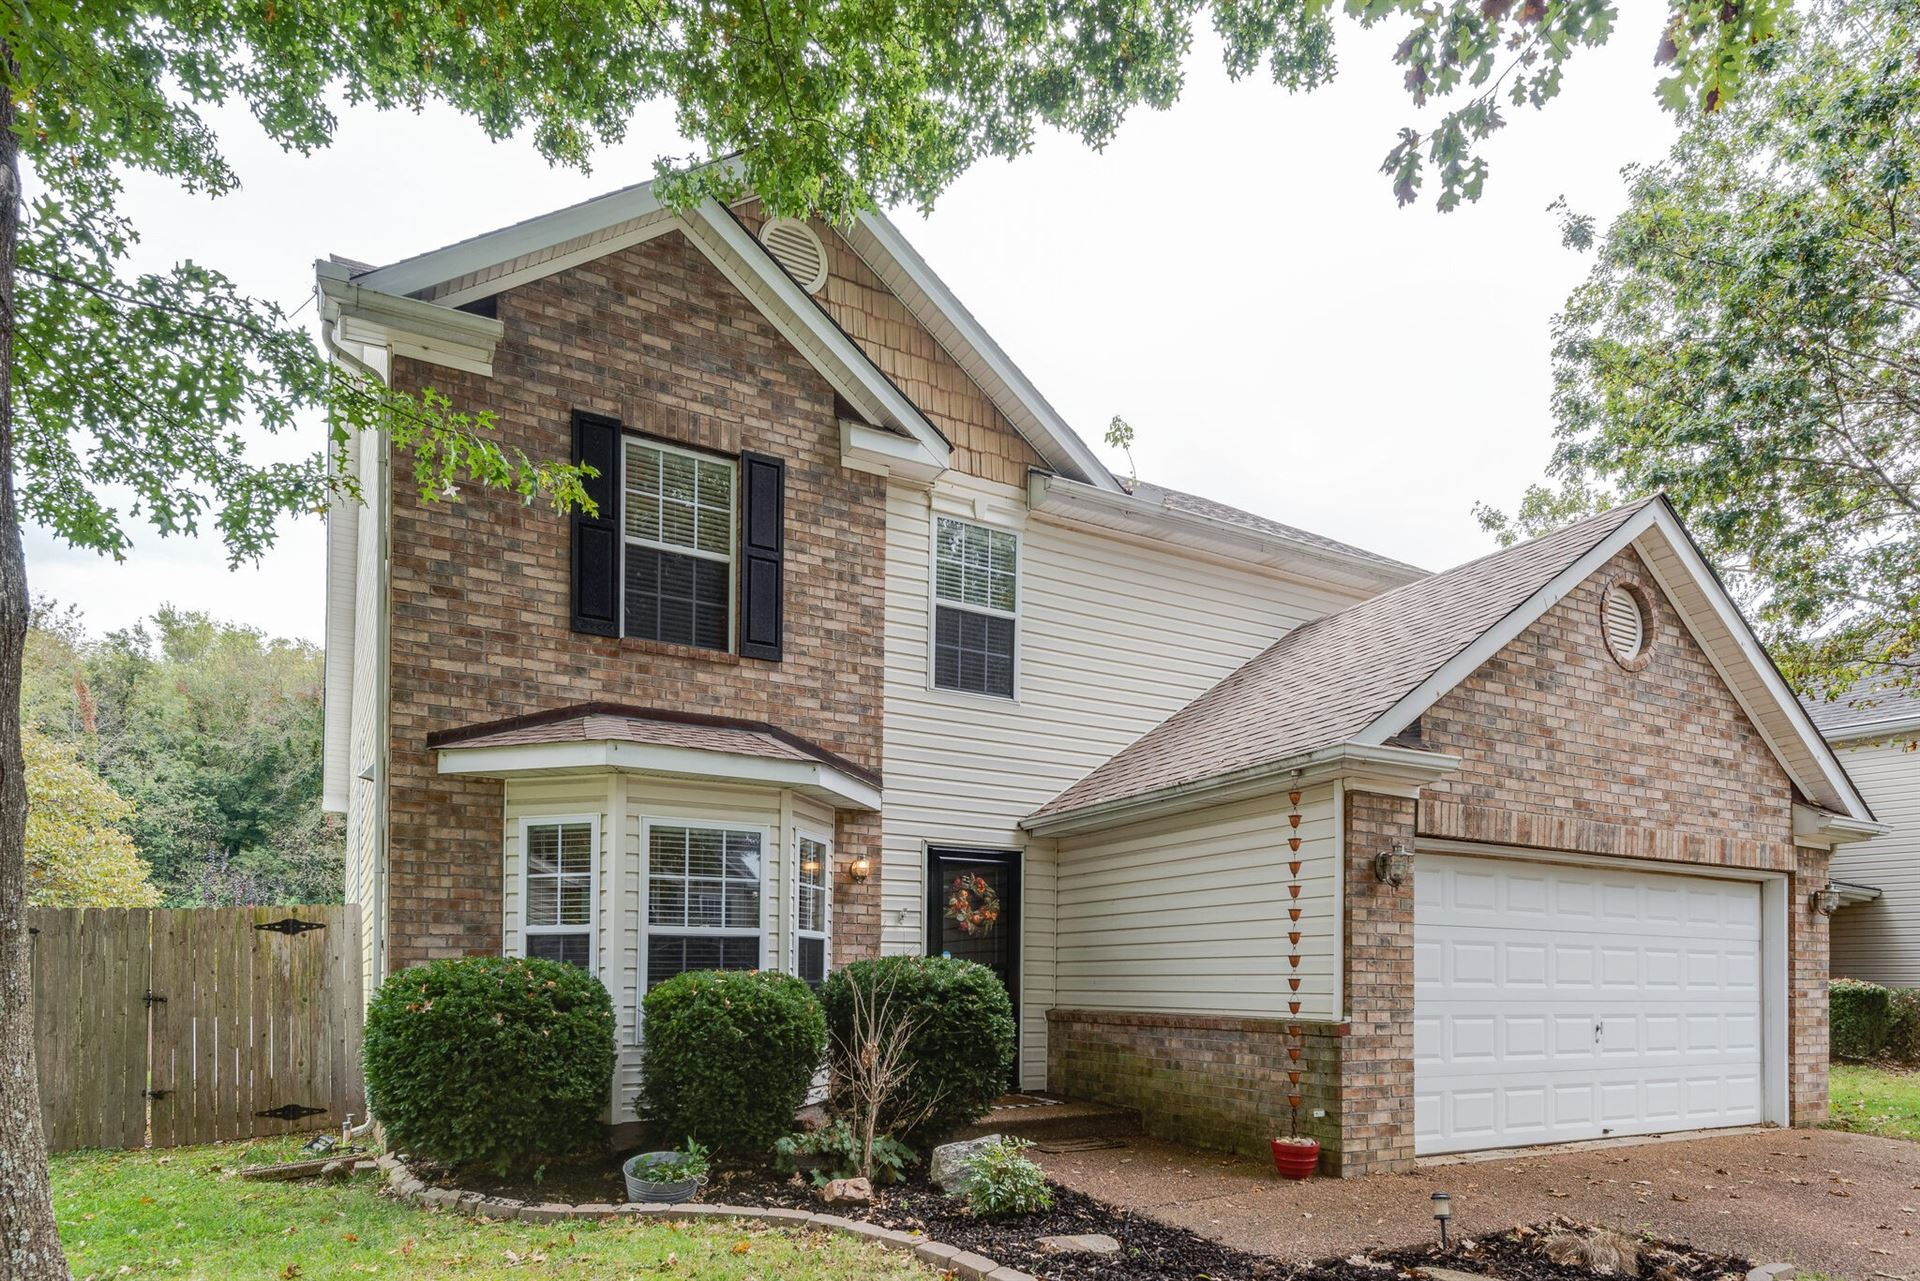 Photo of 3108 Winberry Dr, Franklin, TN 37064 (MLS # 2297180)